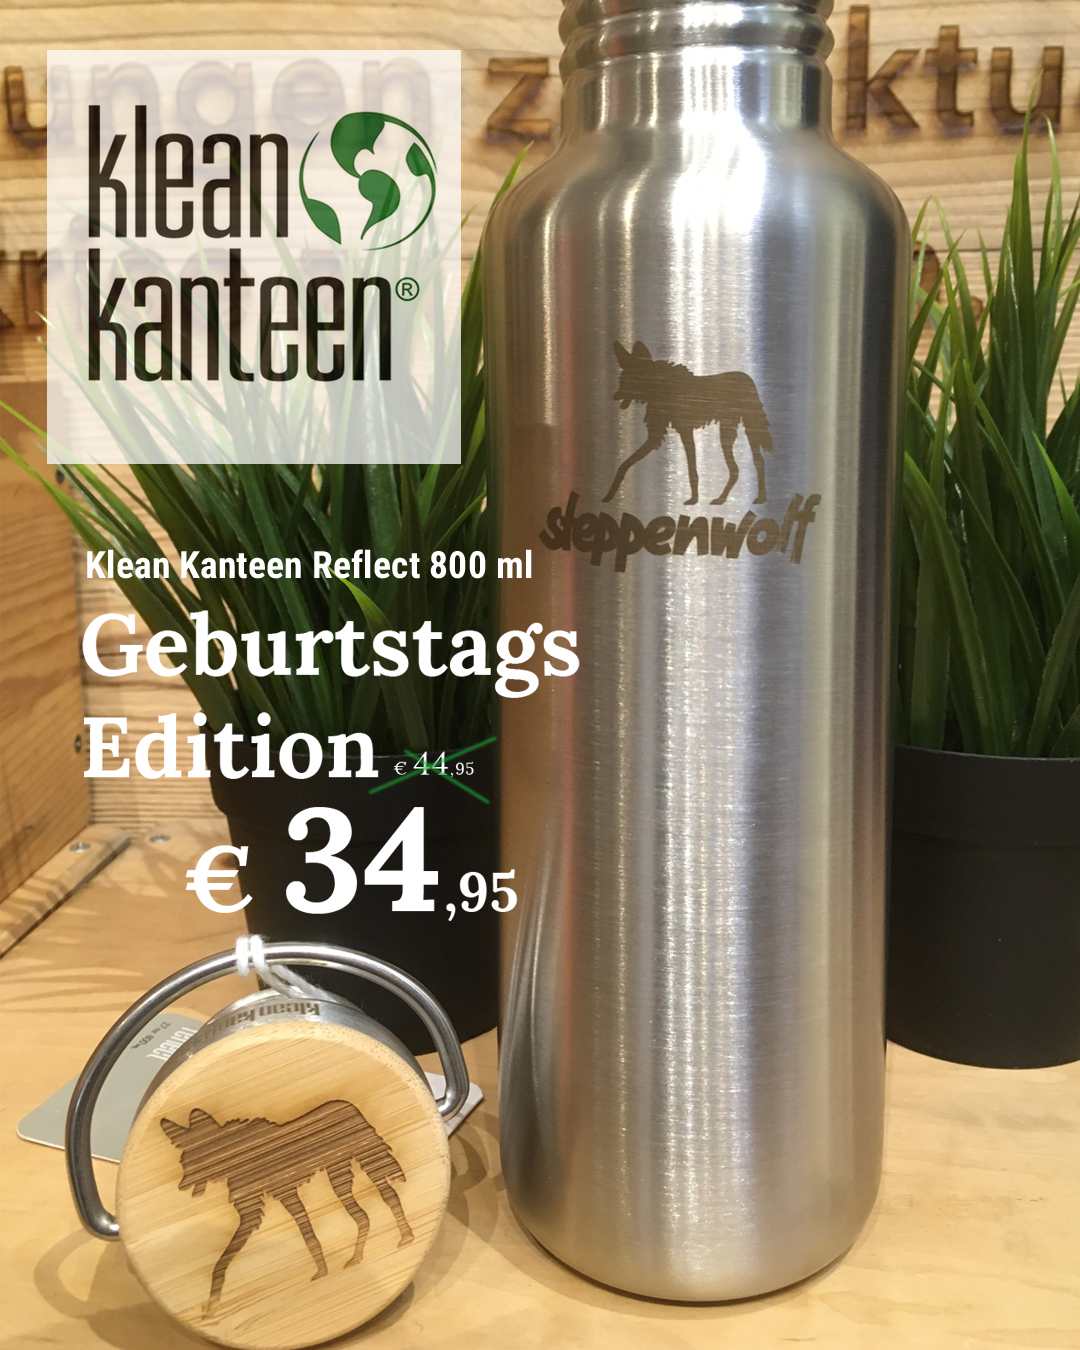 Klean Kanteen Reflect 800 ml Steppenwolf Edition